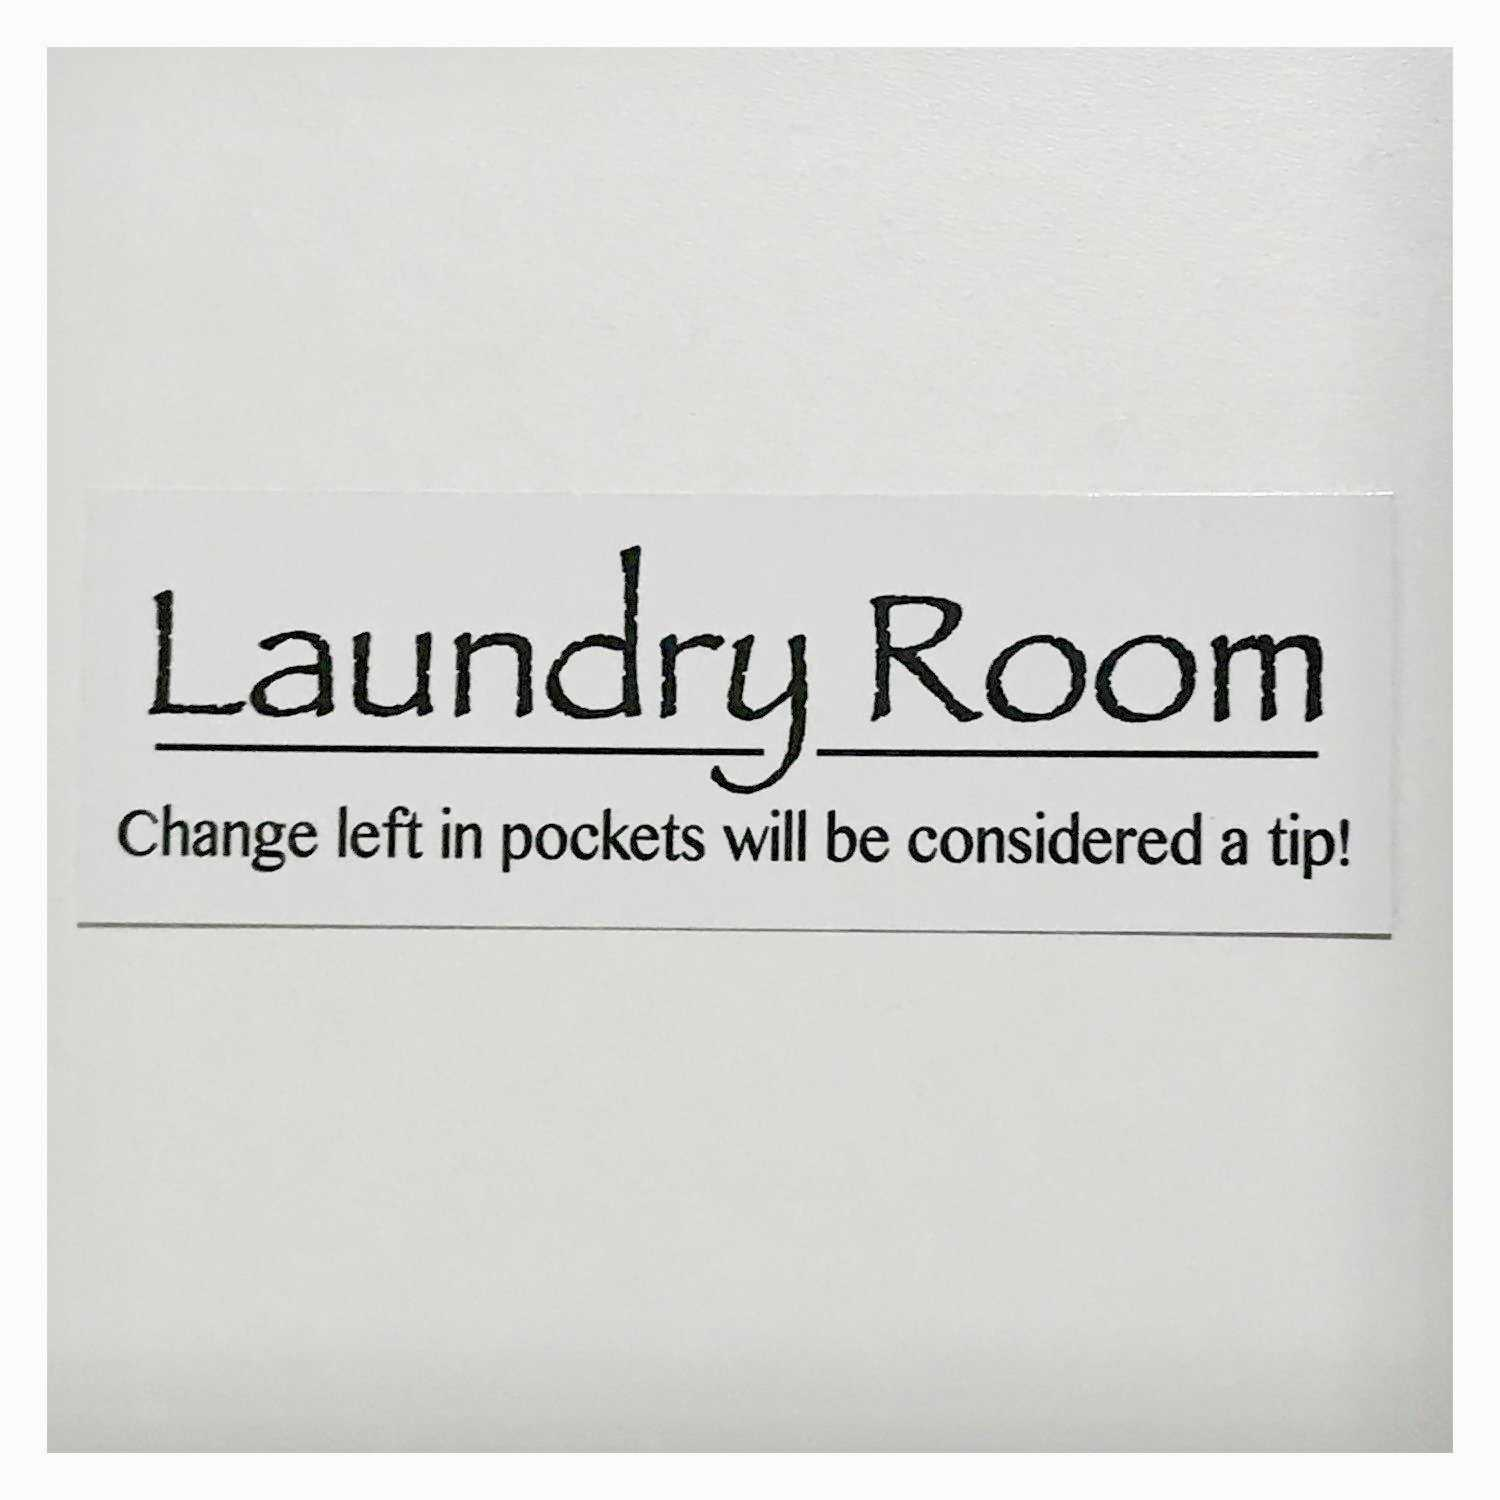 Laundry Room White Change Left In Pockets Considered a Tip Sign Plaque or Hanging - The Renmy Store